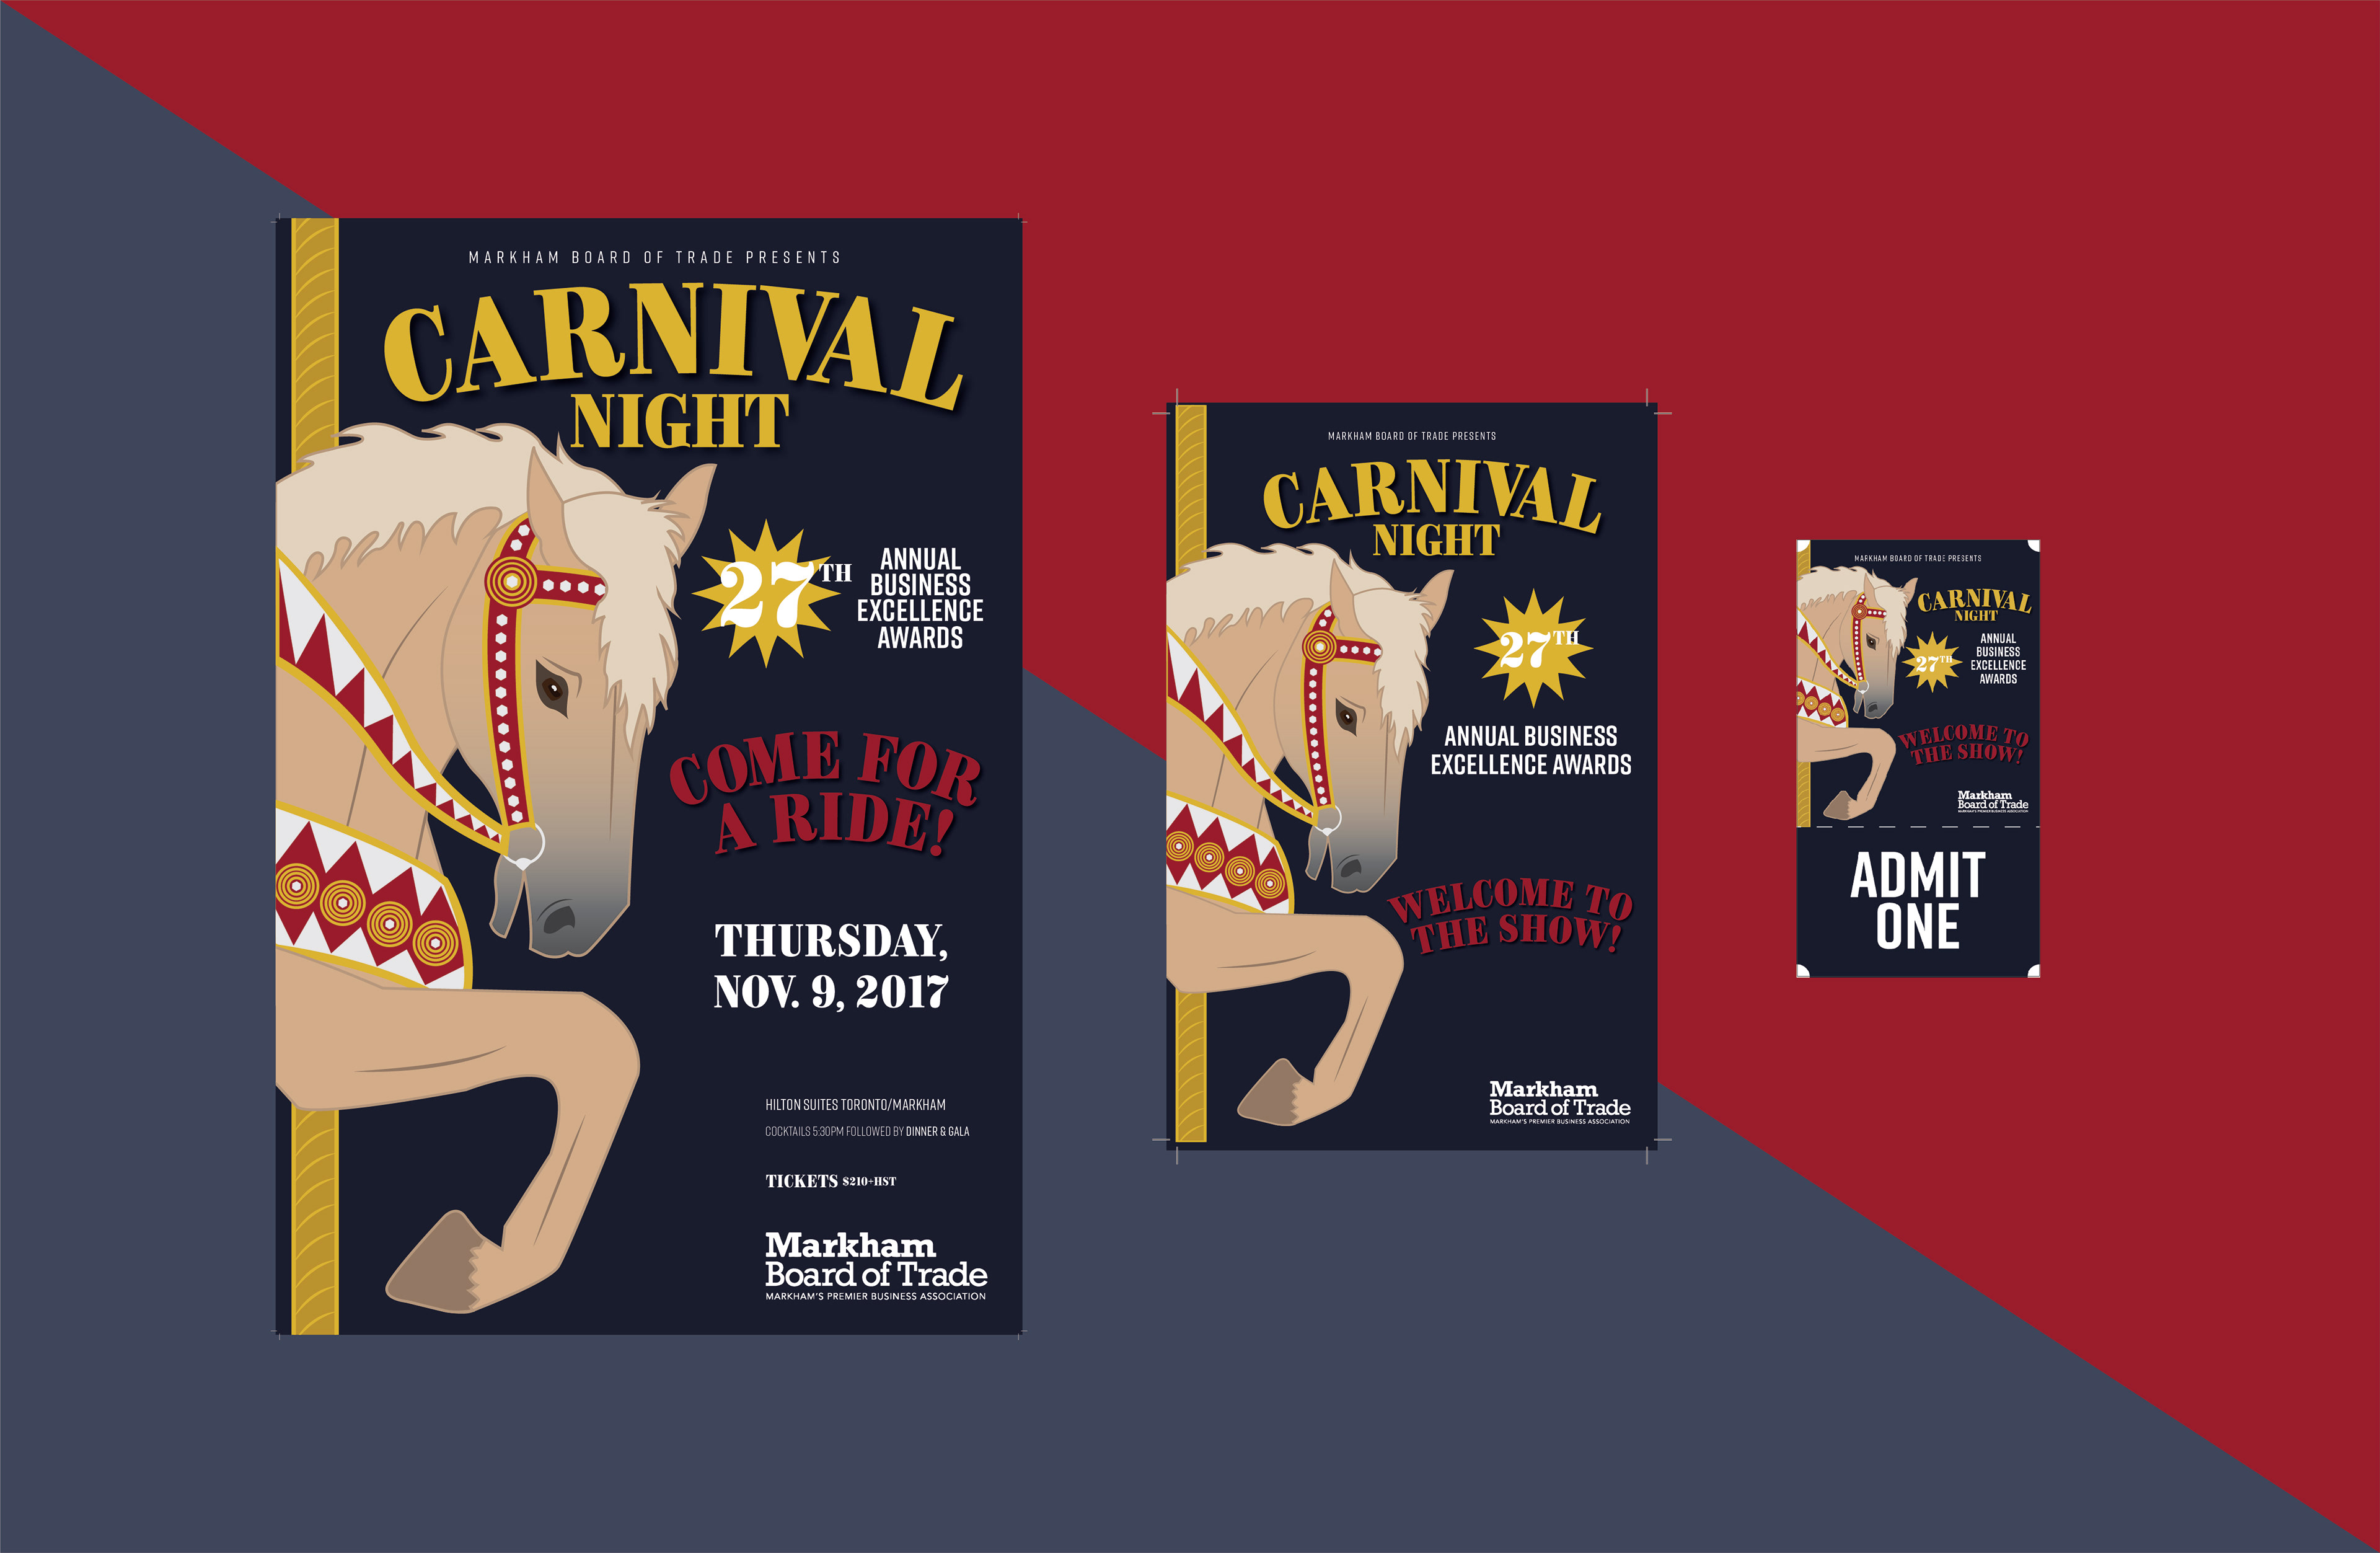 Poster design requirements - This Years Theme Is Carnival And There Were Specific Requirements For The Design And Type The Design Had To Be Shown As A Poster Program And Ticket For